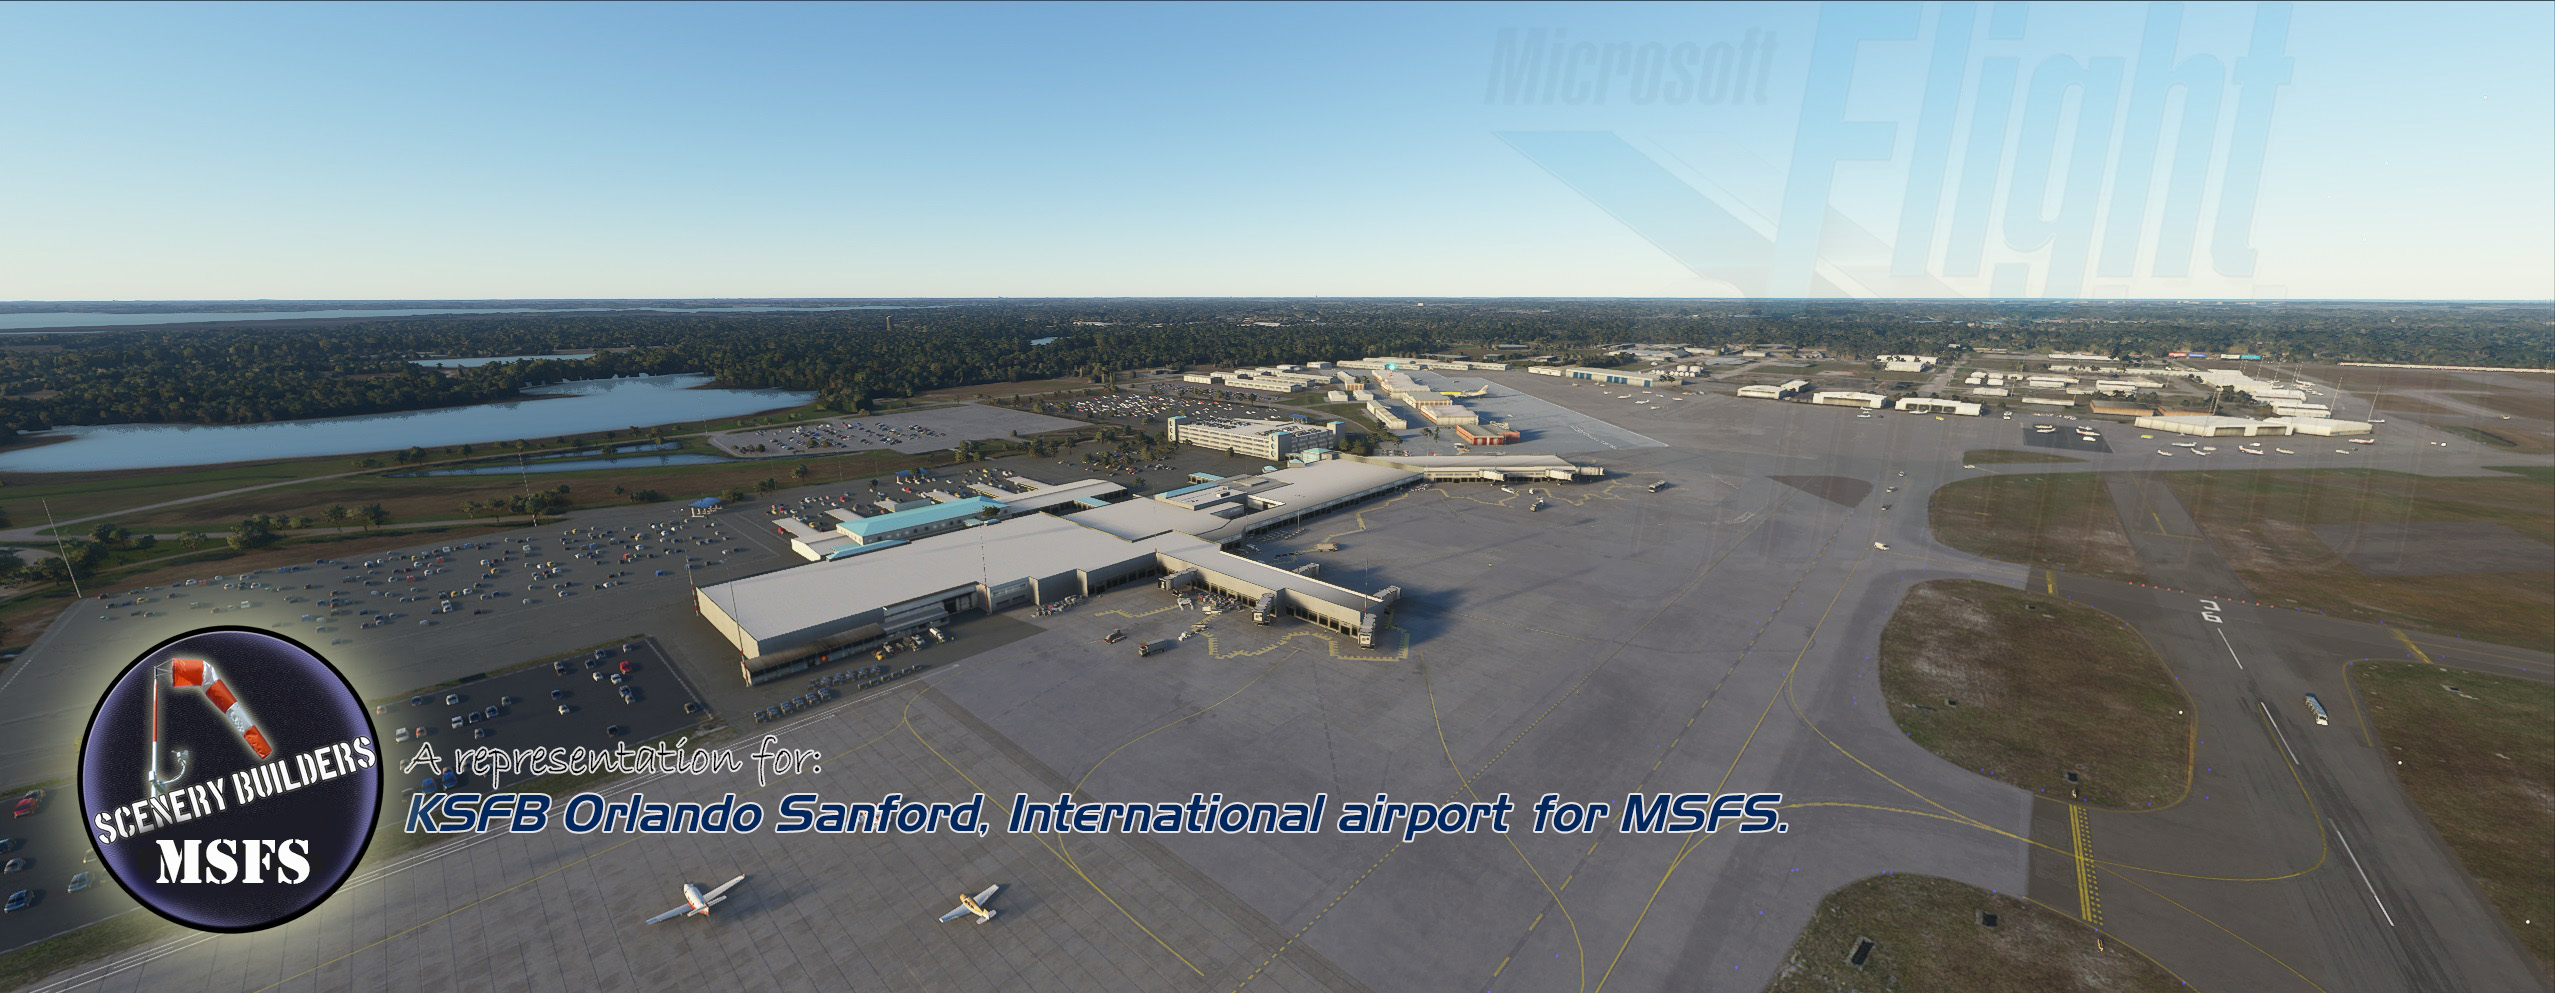 FSXCENERY - KSFB ORLANDO SANFORD INTERNATIONAL AIRPORT MSFS